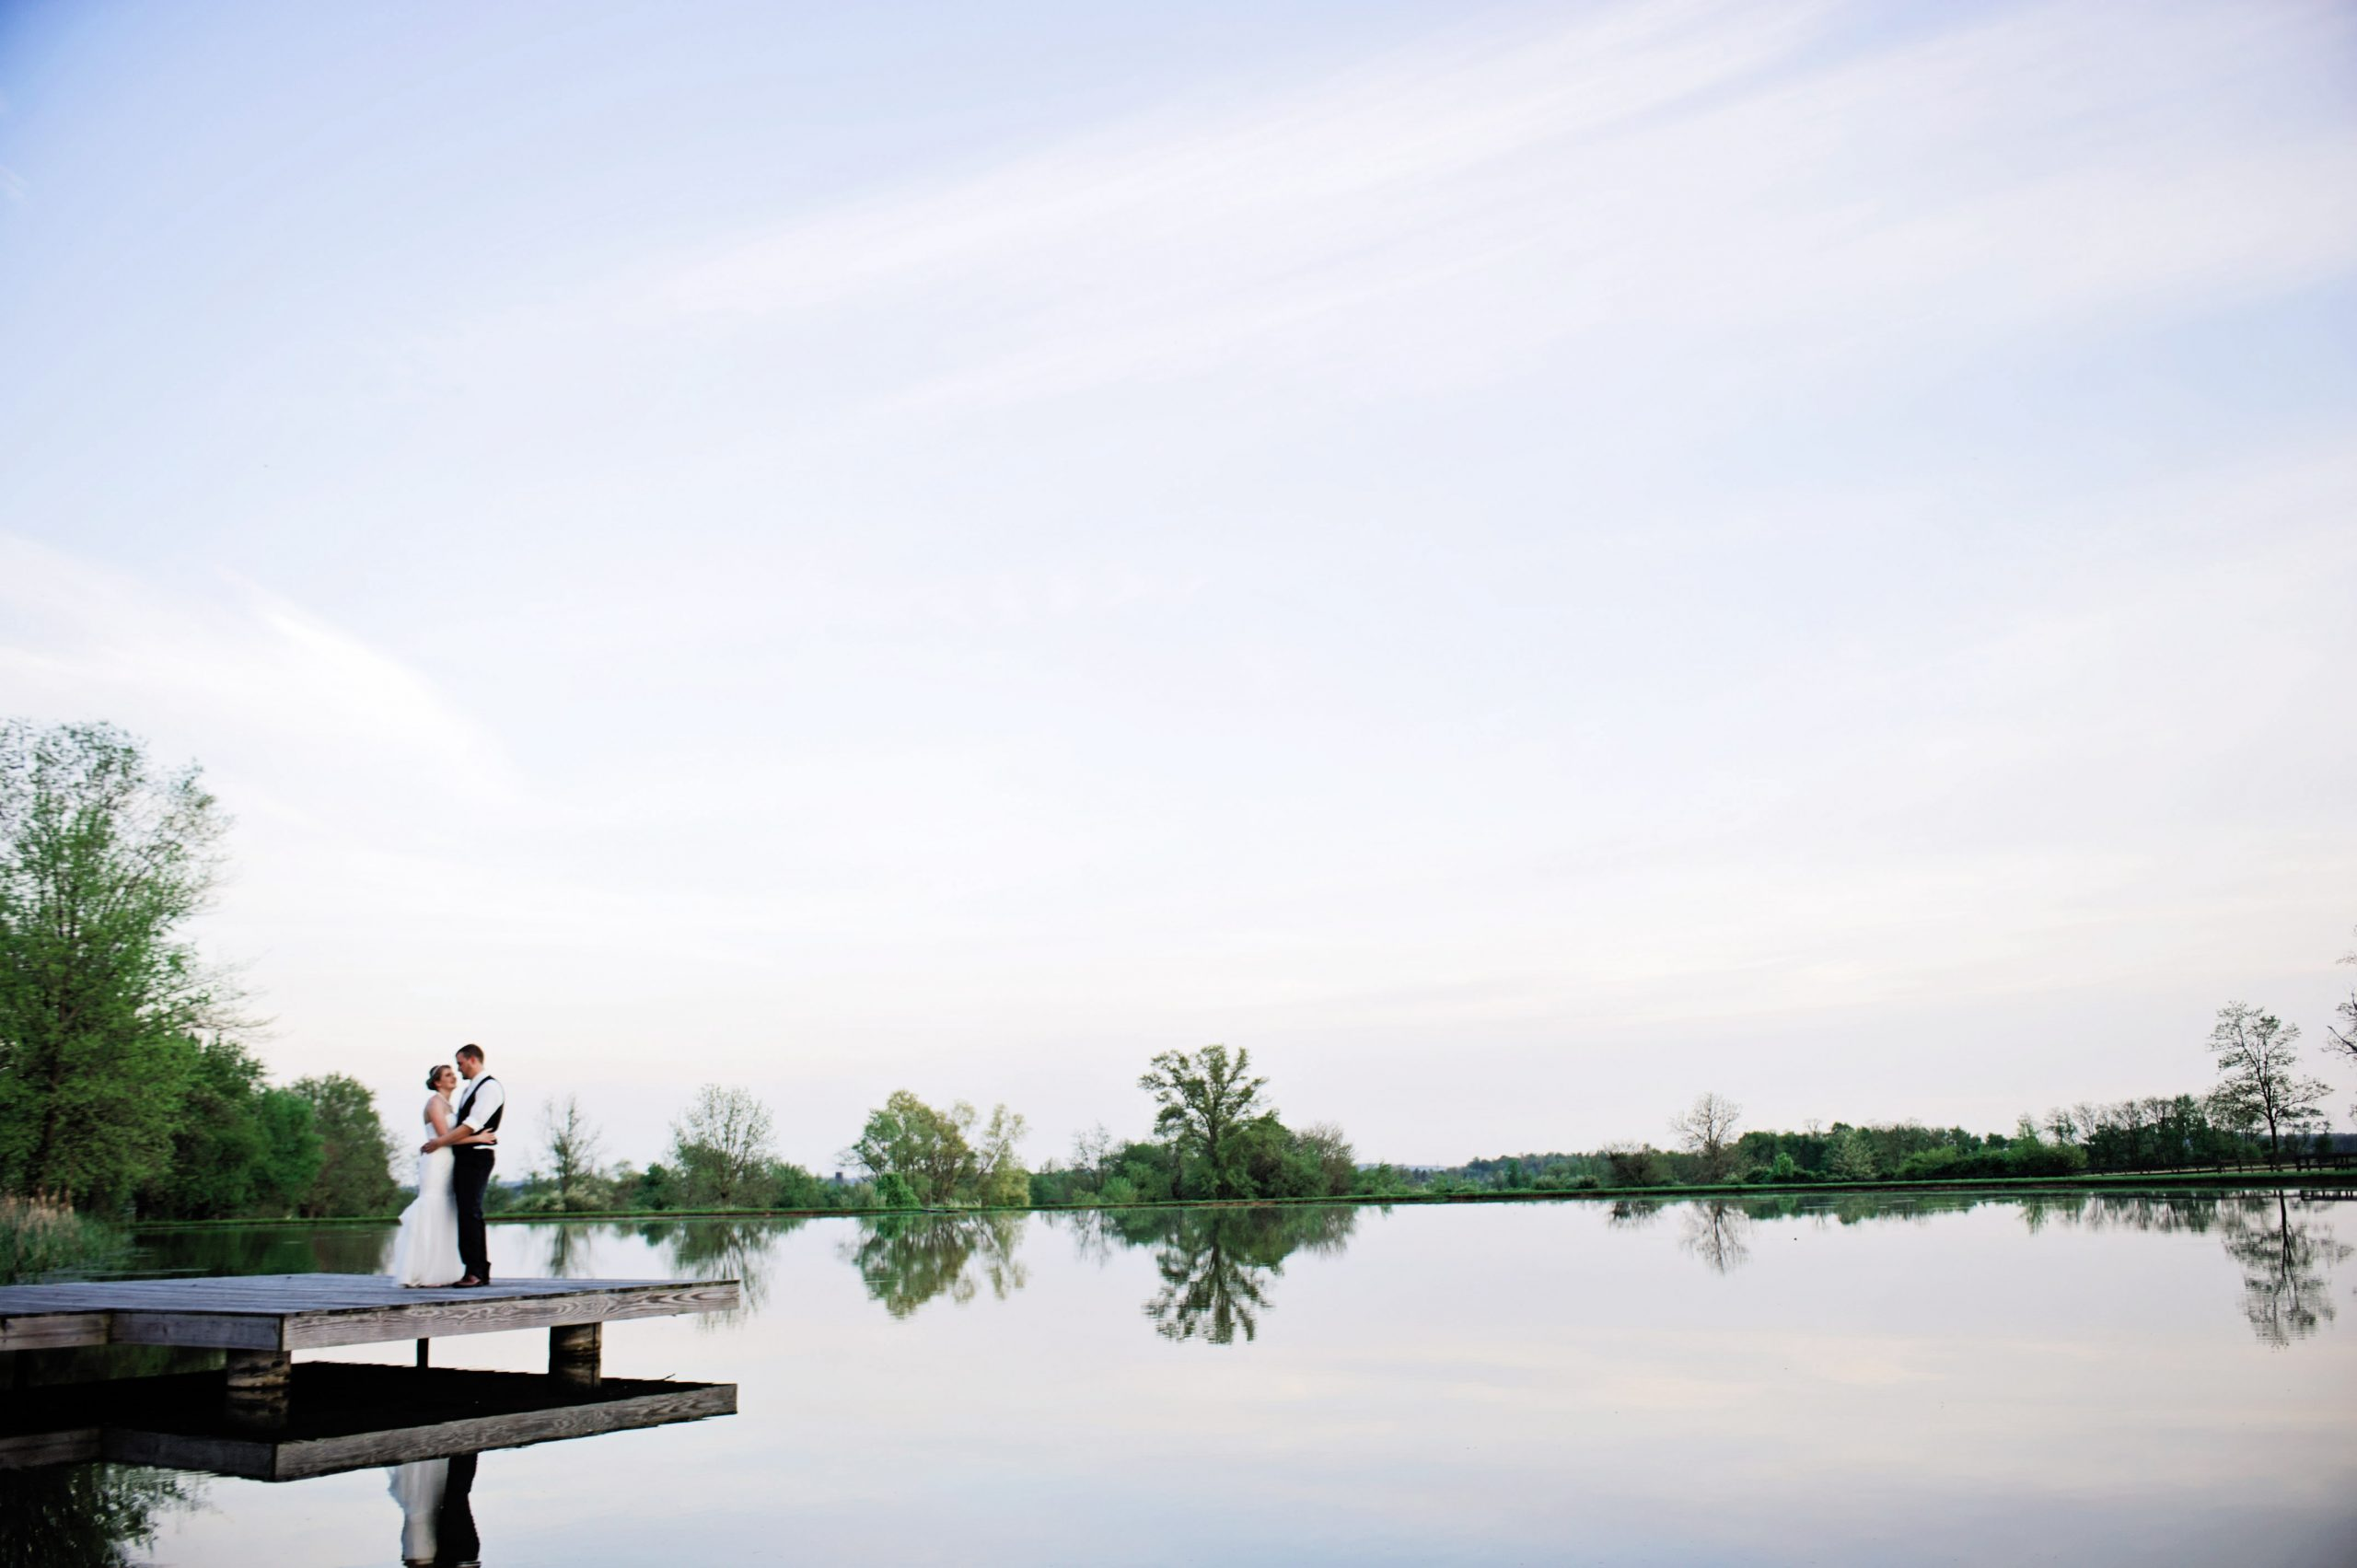 Happy newlyweds photographed by Lovefusion Photography at Lakeview Farms in York, PA. Featured on Dream Weddings. Featured on Dream Weddings.